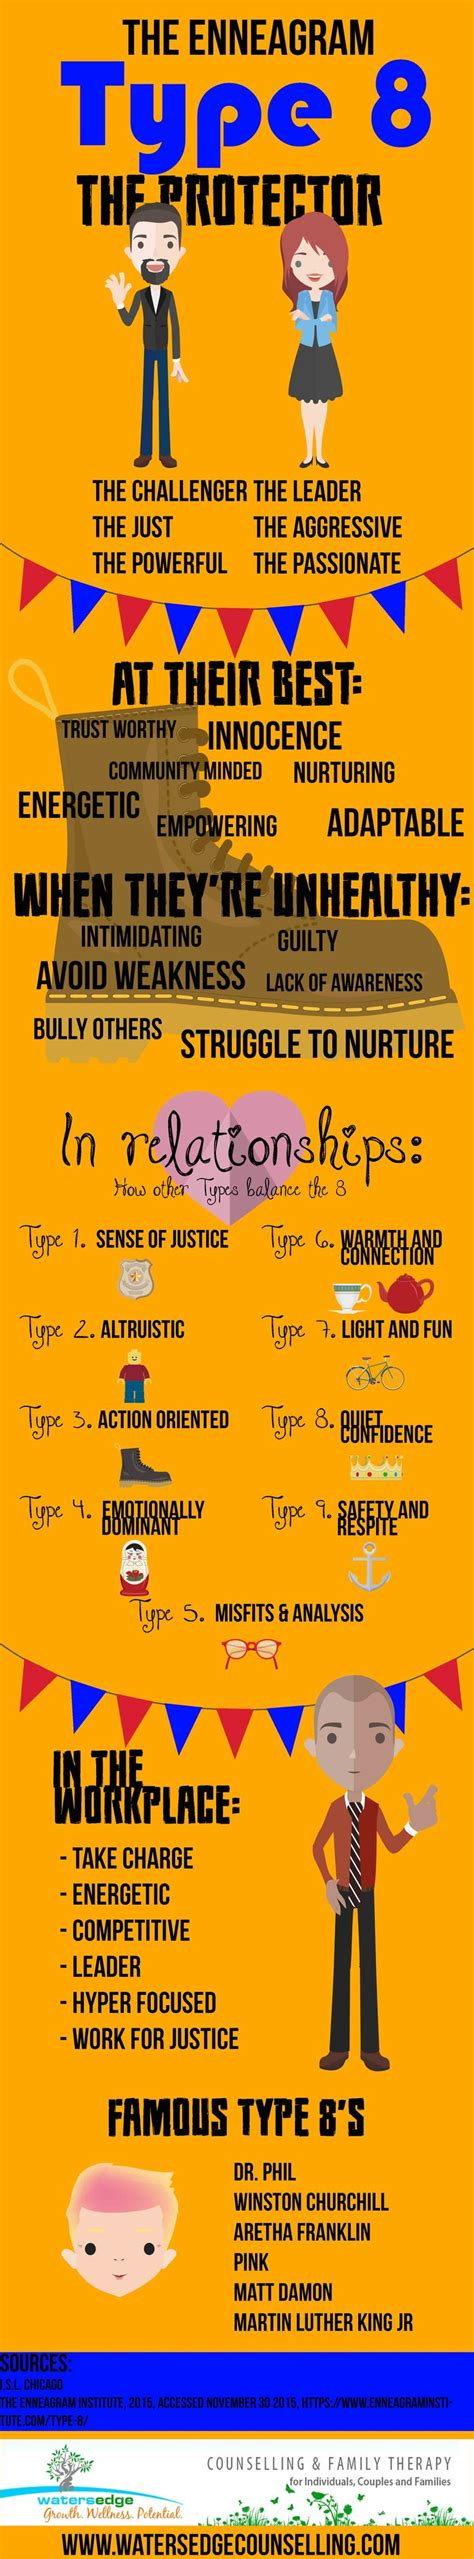 362 best images about Enneathing enneagram! on Pinterest